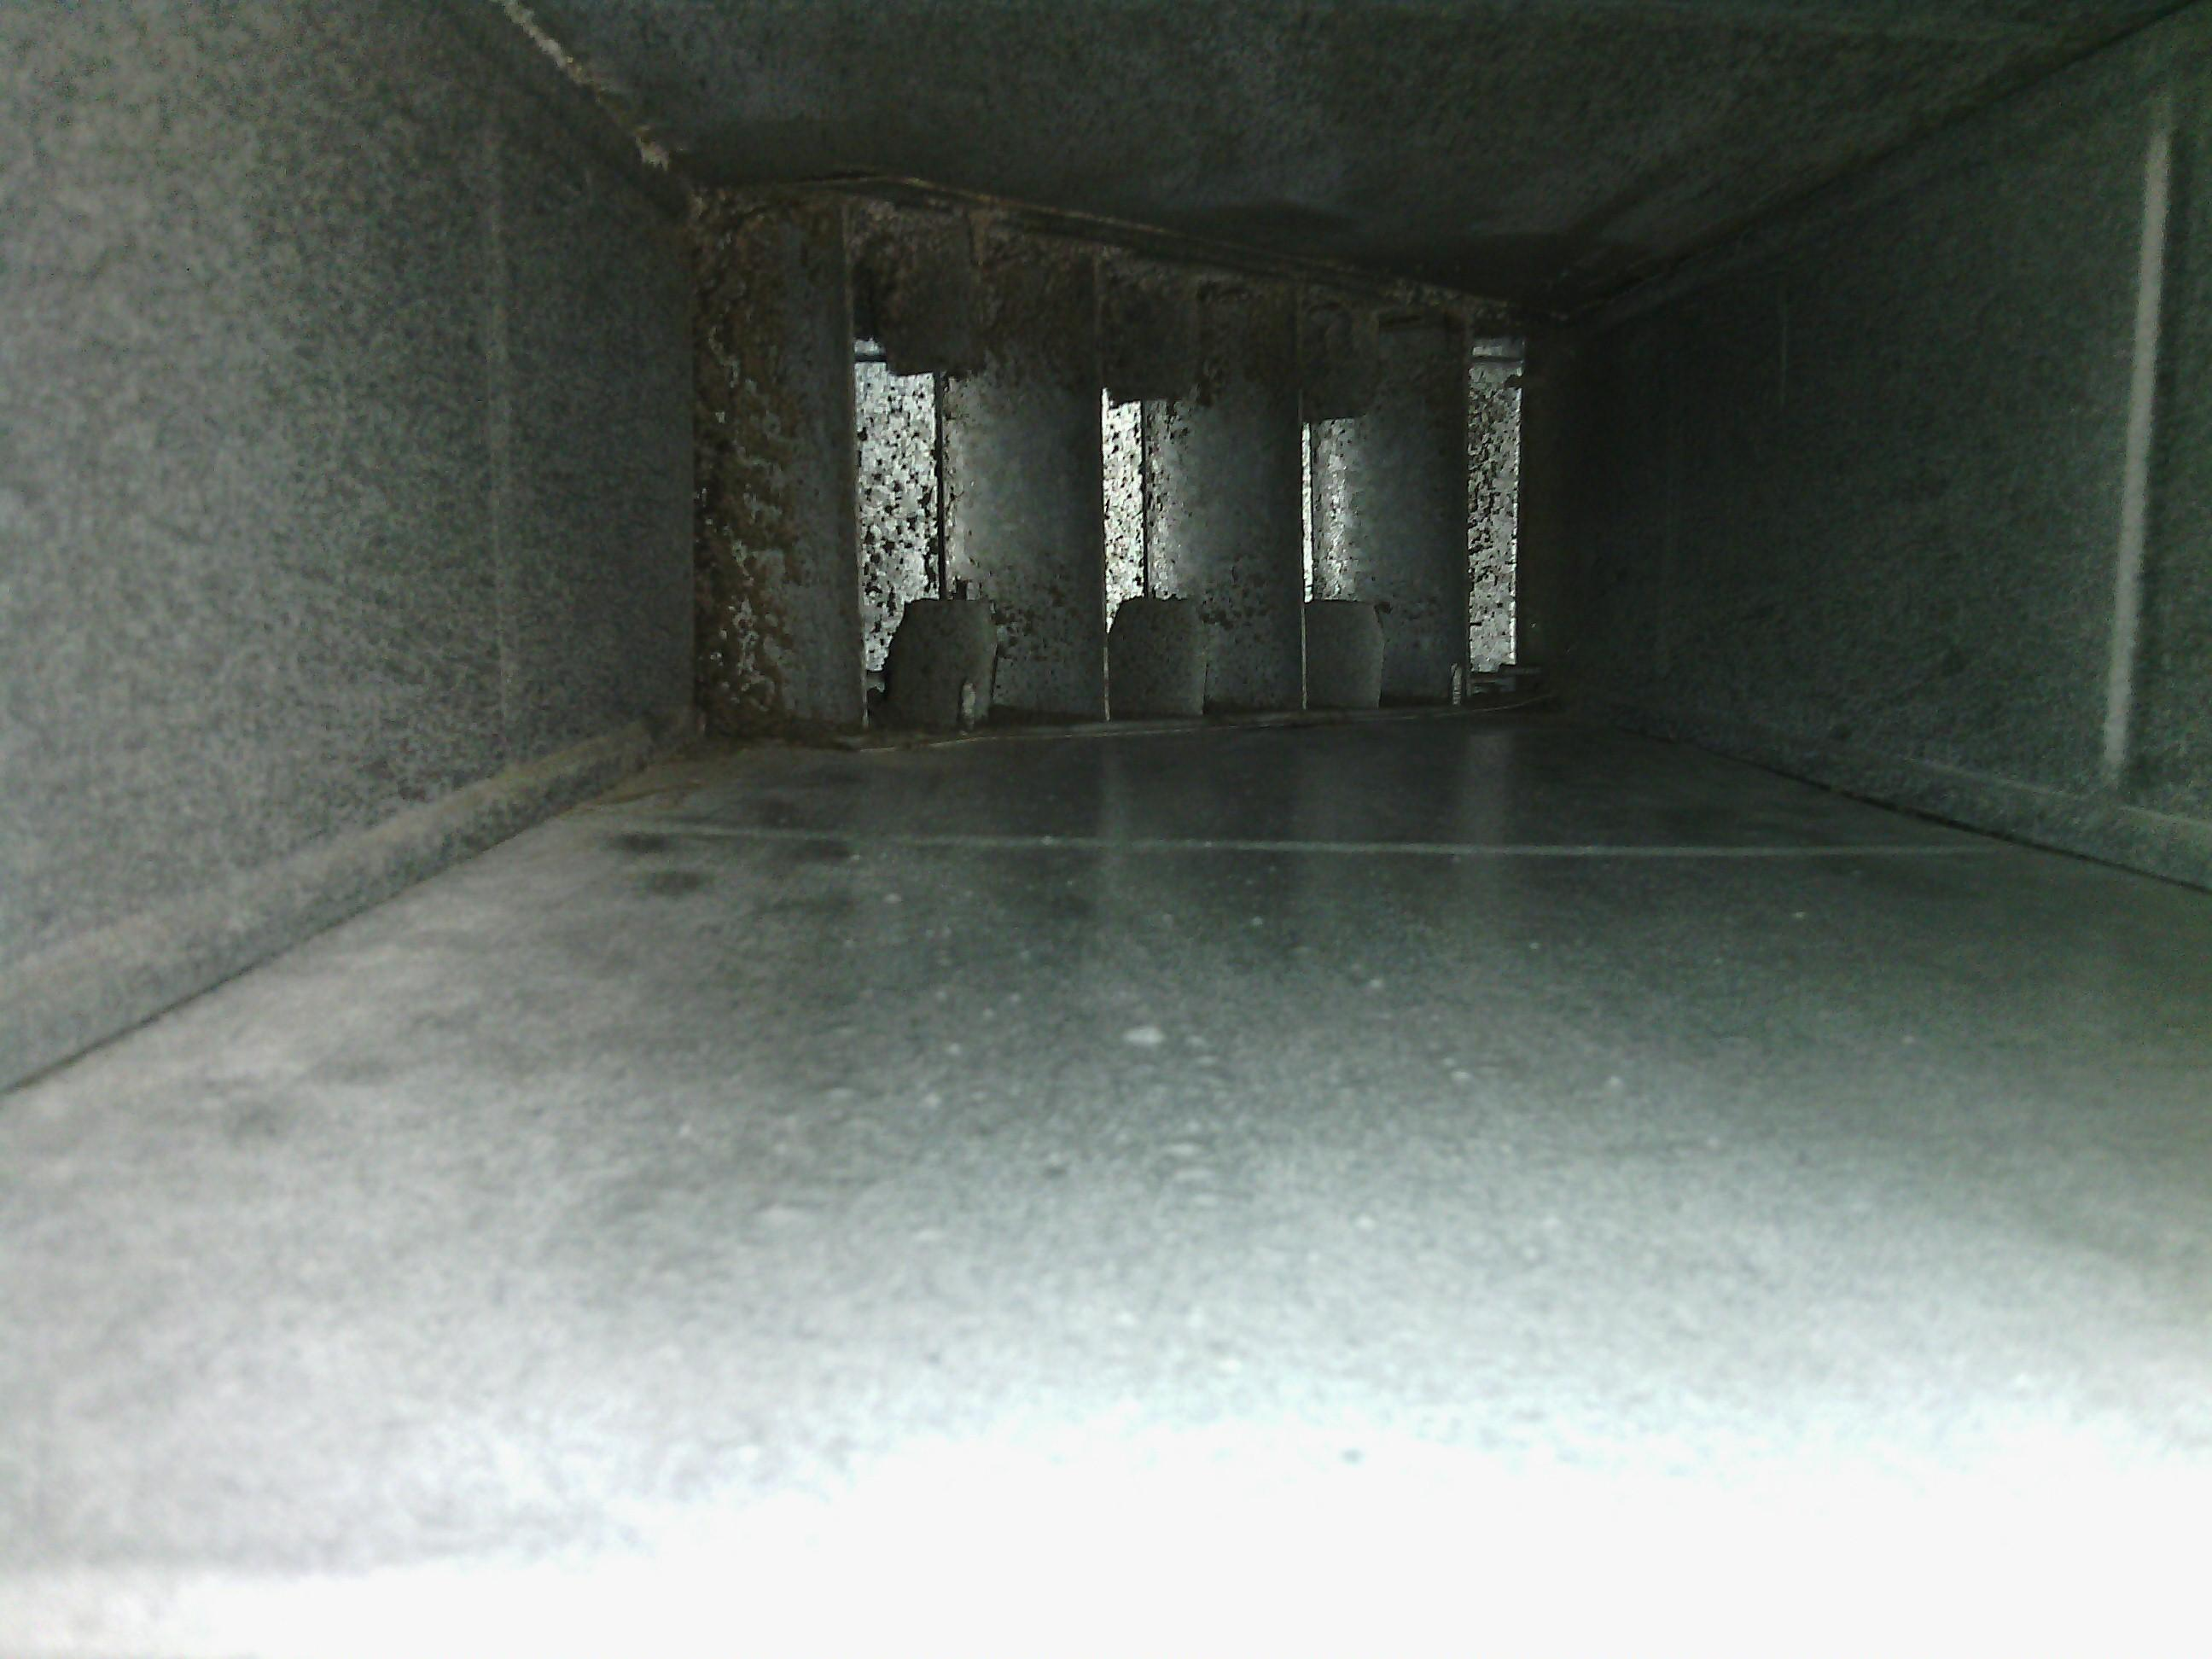 PANAMERICAN AIR DRYER AND DUCT CLEANING